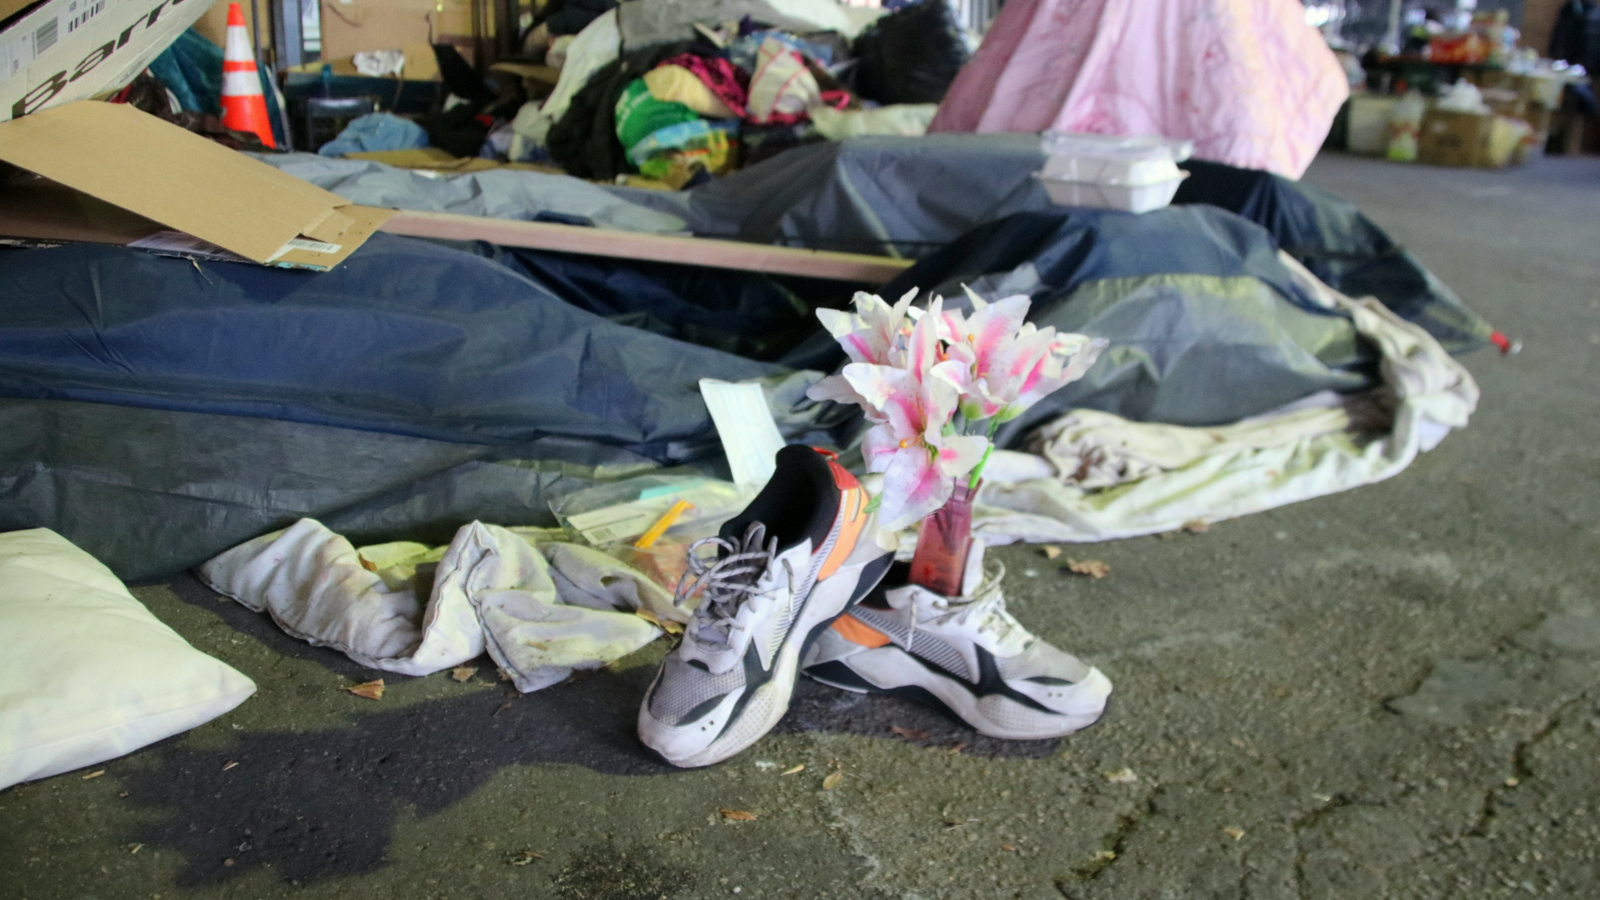 A makeshift memorial for Sherry Woods, who died Thursday in the now-collapsed blue tent behind this pair of her old shoes. (Louis Krauss)